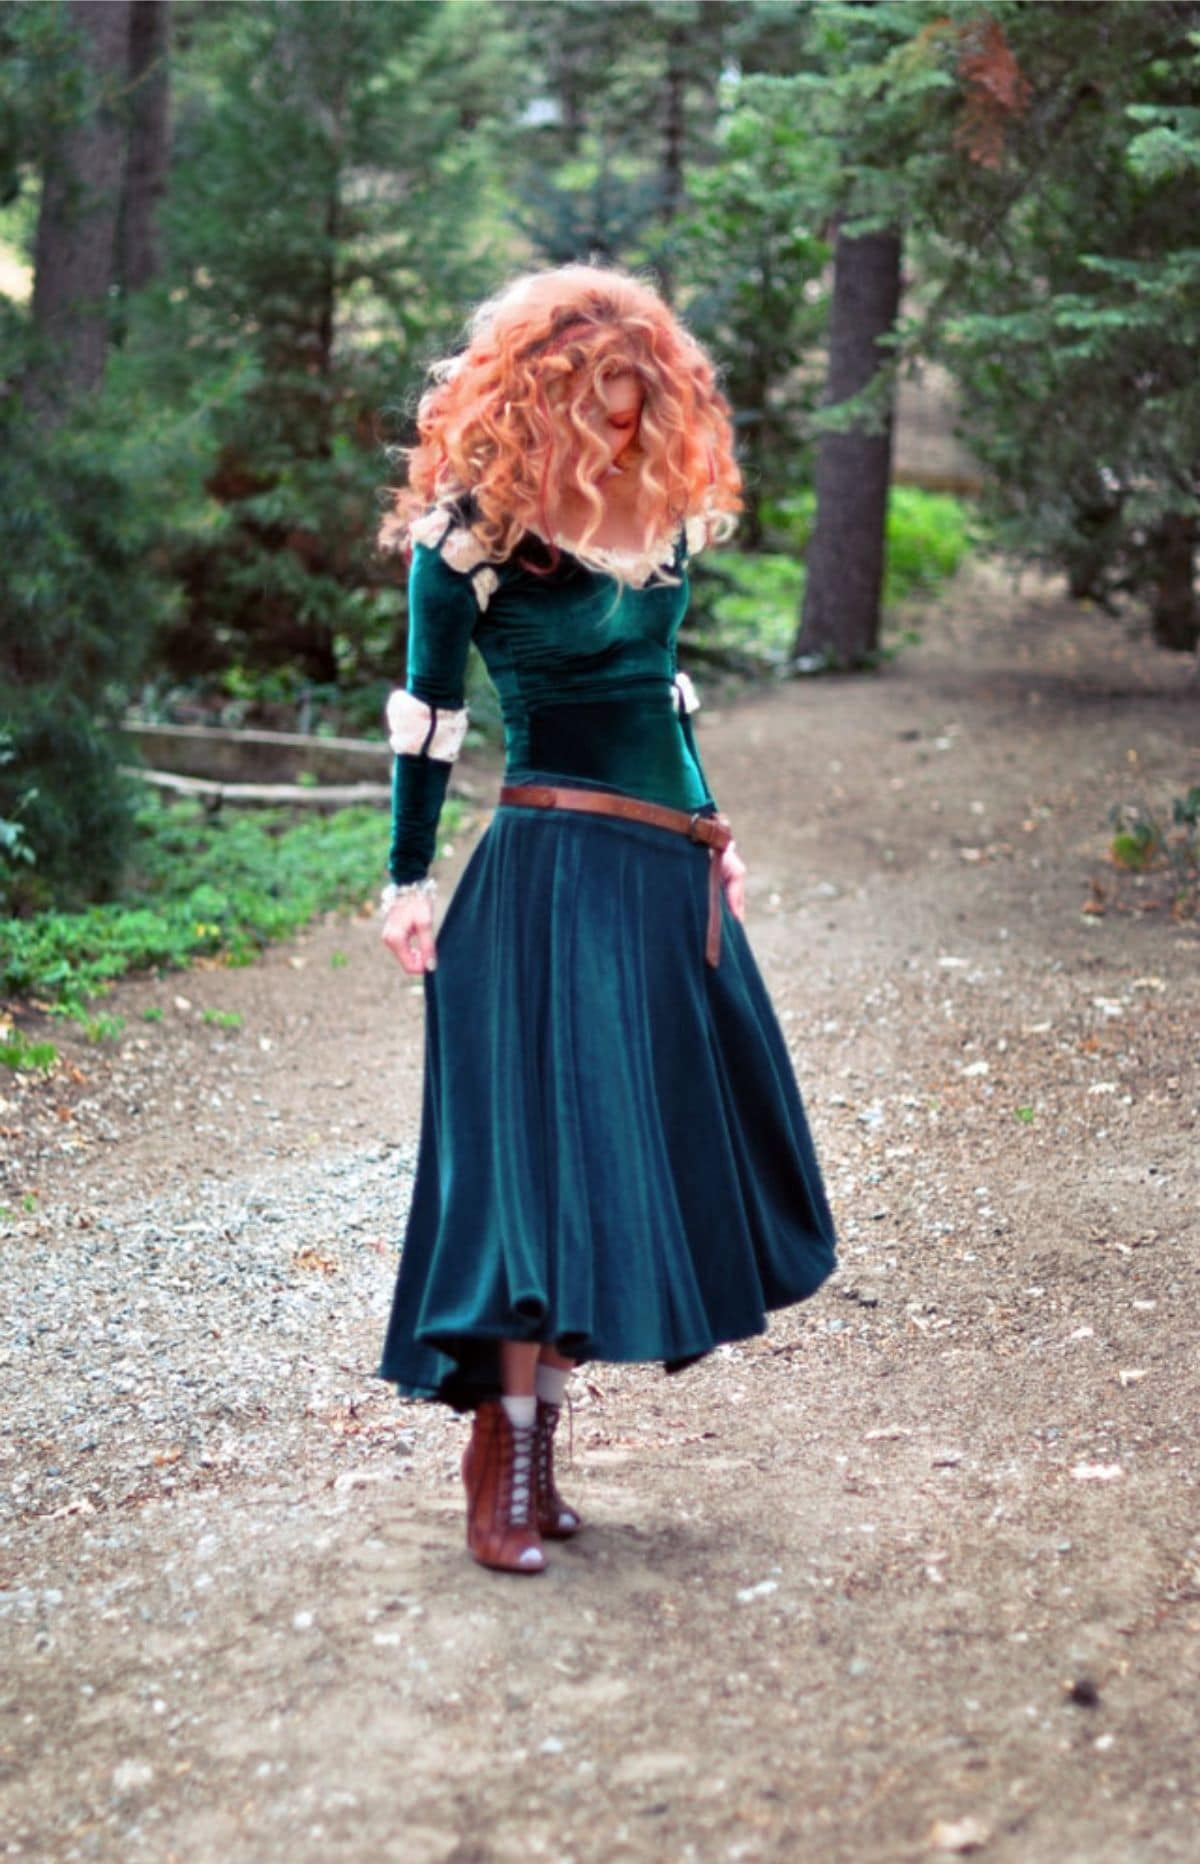 Disney princess Merida costume